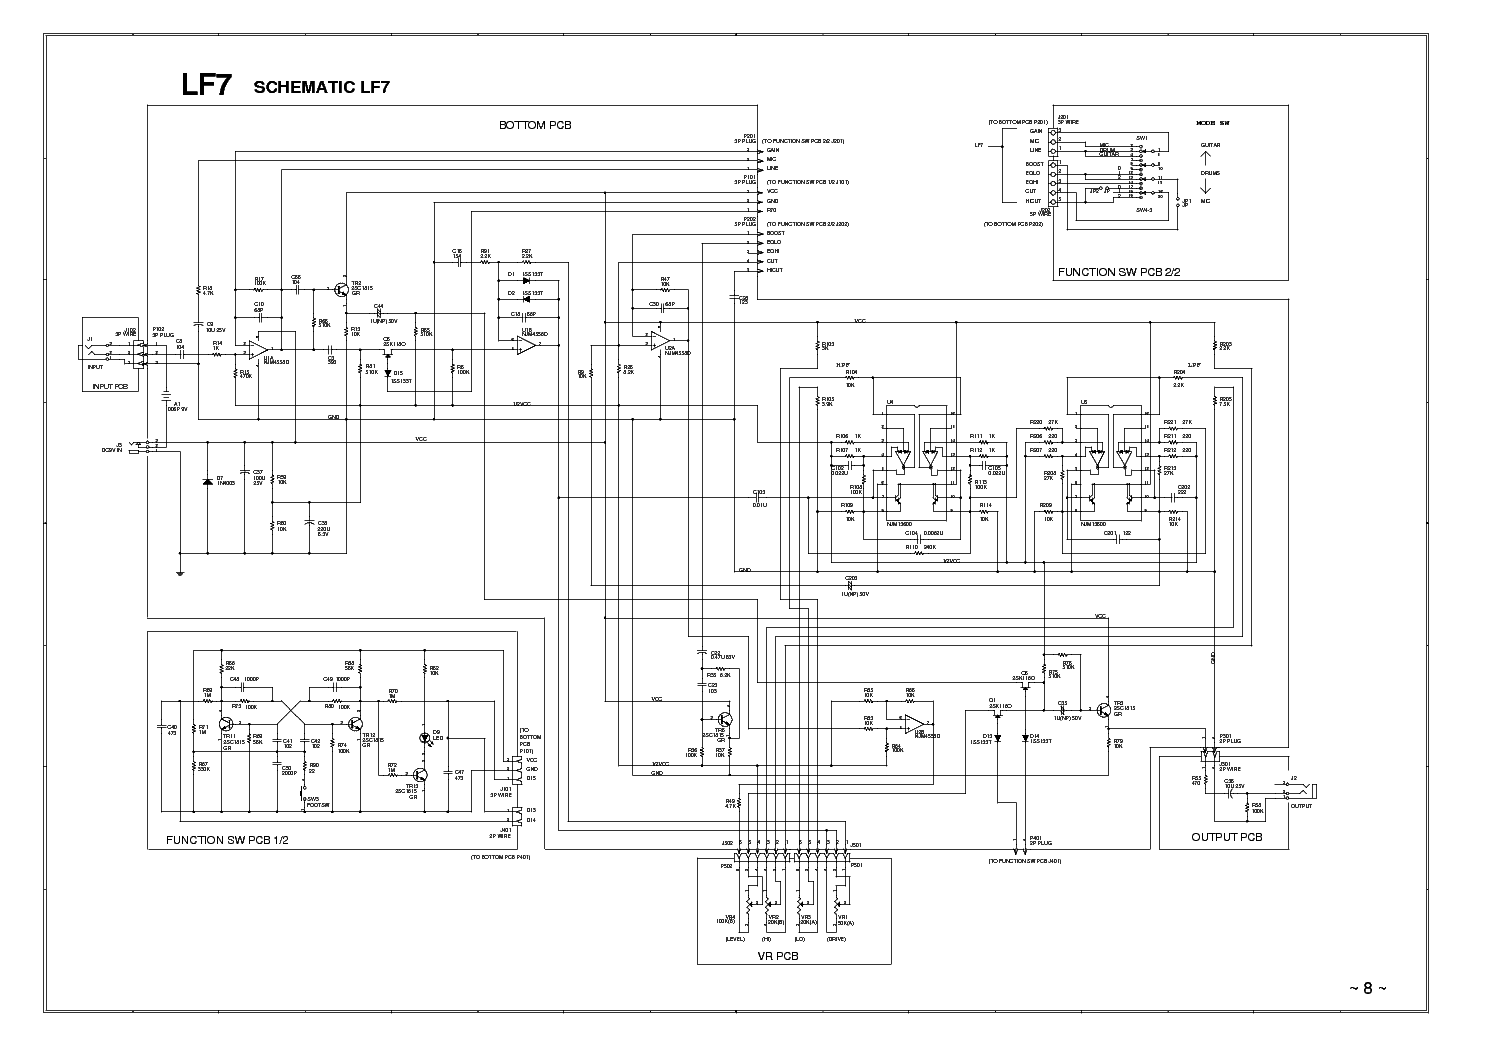 IBANEZ LF7-01-SCHEMATIC Service Manual download